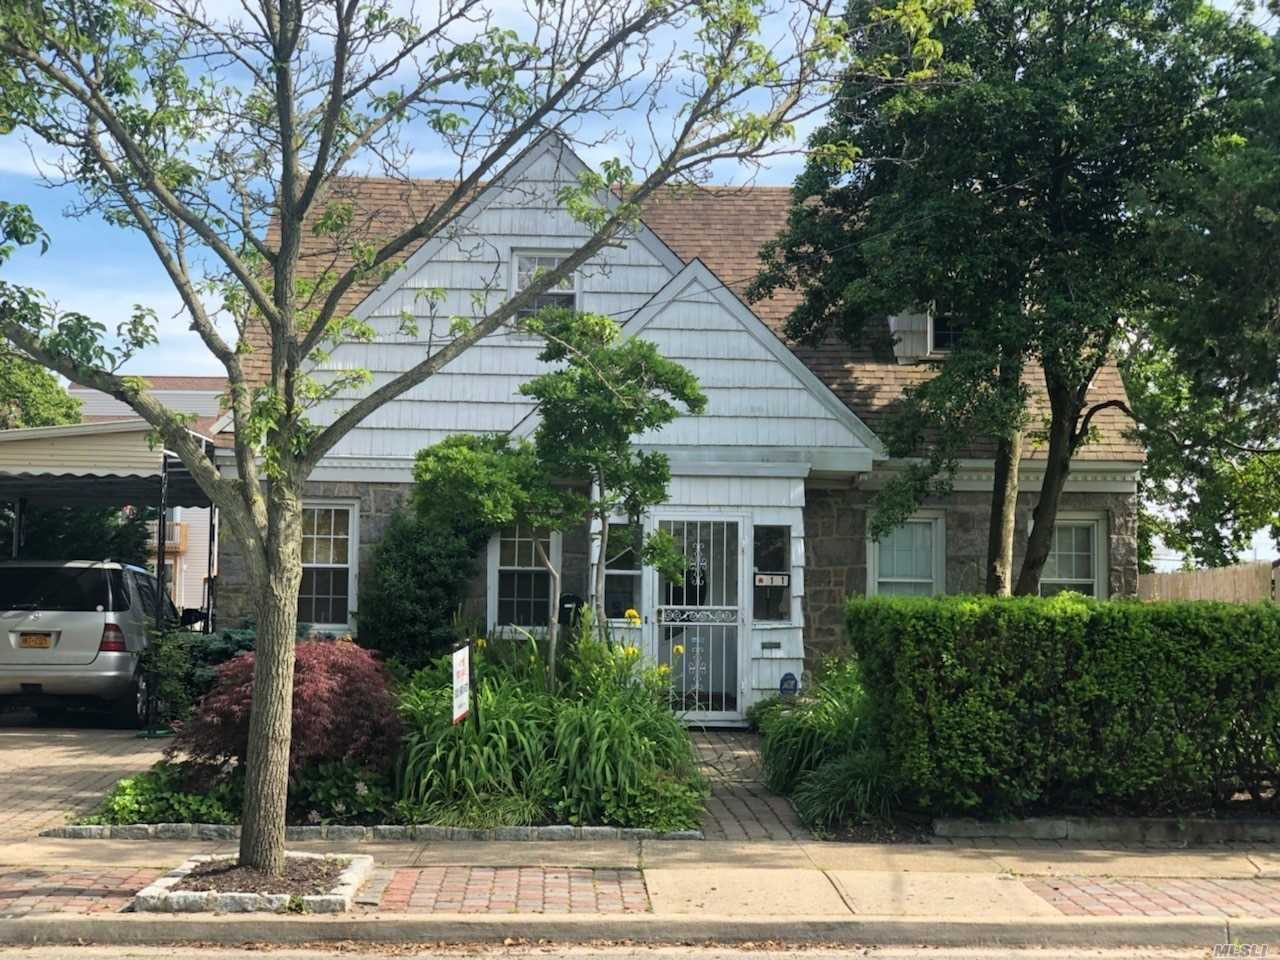 Welcome to beautiful water front property on canal with floating dock. Completely renovated first floor boast living room, dining room, family room/heated sun room, gas fireplace, central air, radiant floor and 1.5 bath. Second floor has 3 bedrooms and 1 full bath.